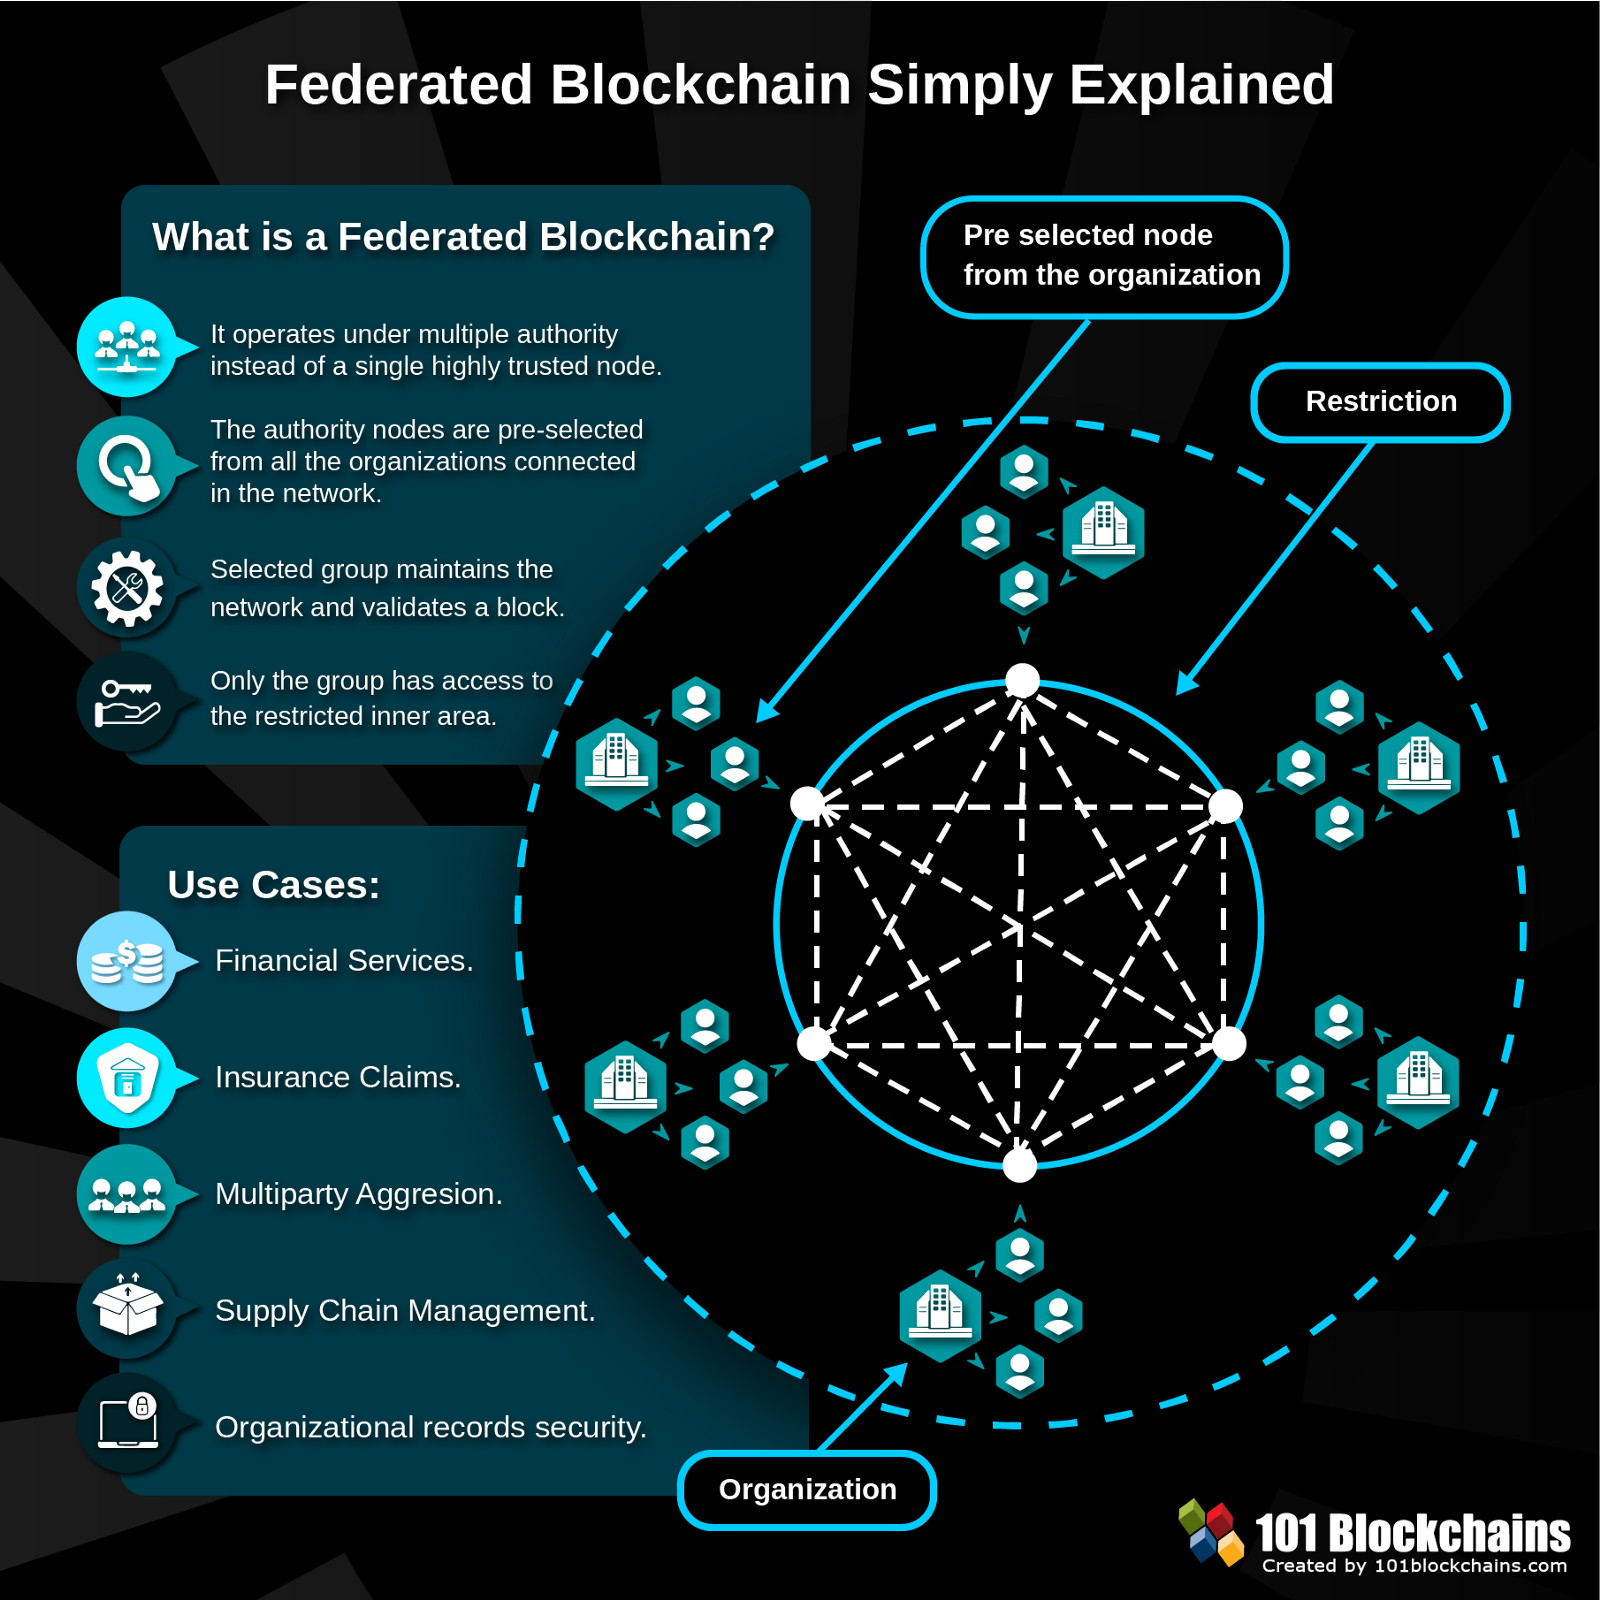 blockchain federated explained technology consortium simply blockchains trends infographic 101blockchains does simple